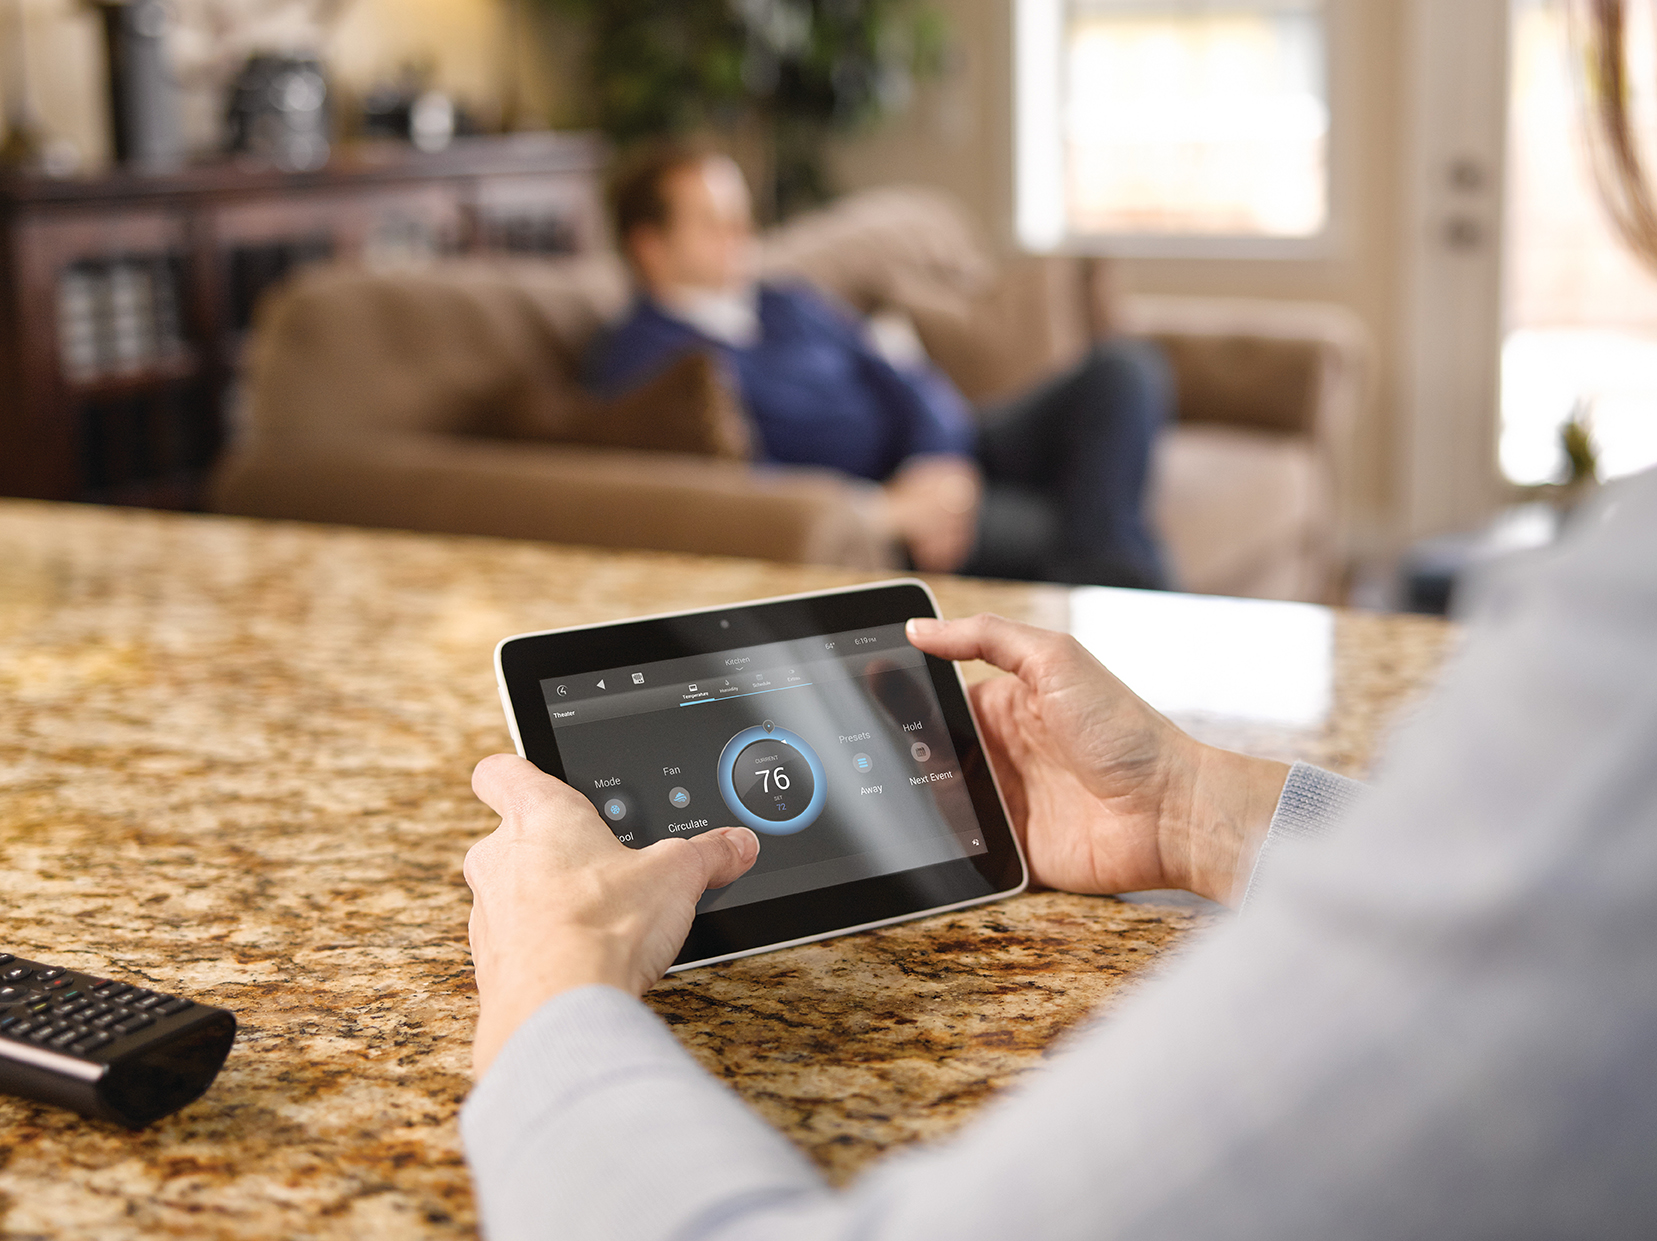 COMMERCIAL  AUTOMATION SMART THERMOSTAT  AUSTIN  LAGO VISTA SPICEWOOD  BEE CAVE  LAKEWAY  DRIPPING SPRINGS  WIMBERLY · MARBLE FALLS · WEST LAKE HILLS  FREDERICKSBURG HORSESHOE BAY BELTON